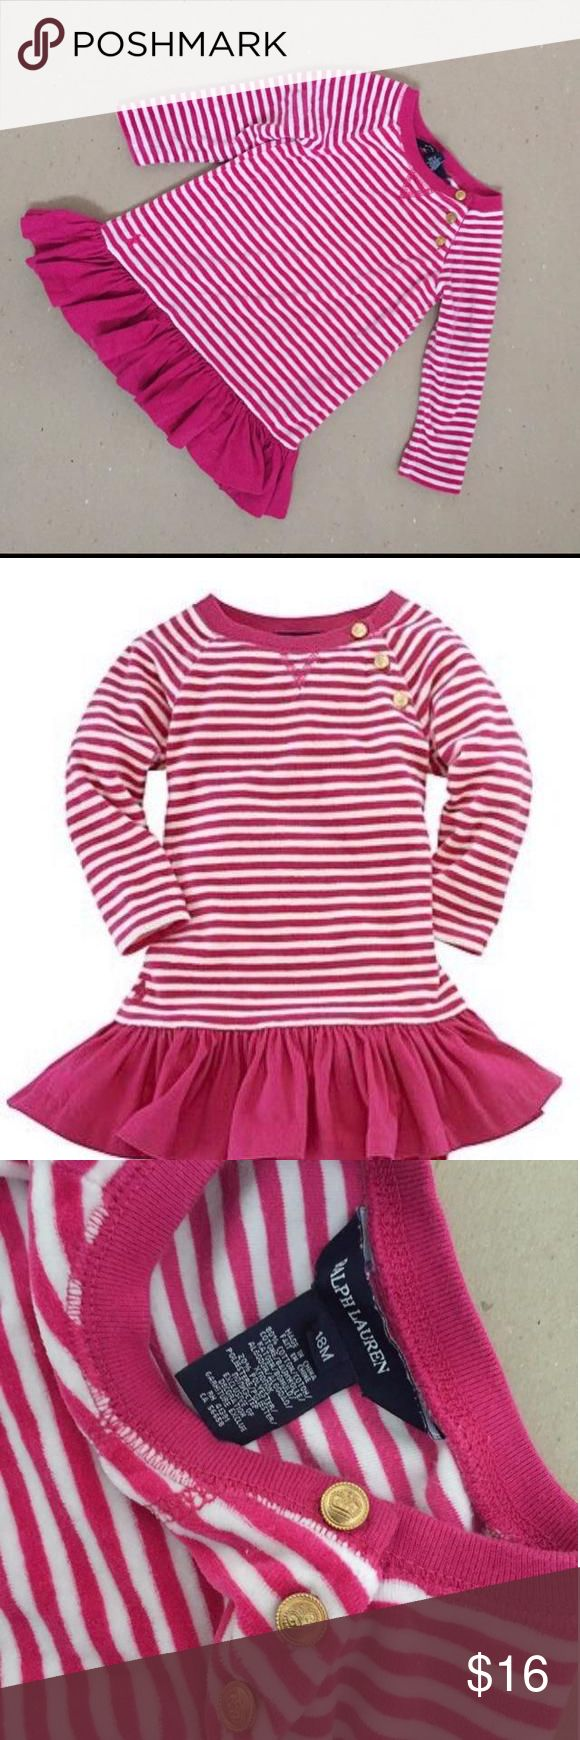 Ralph Lauren pink striped velour dress Absolutely adorable with gold buttons! Very soft and cozy. From Bloomindales. Ralph Lauren Dresses